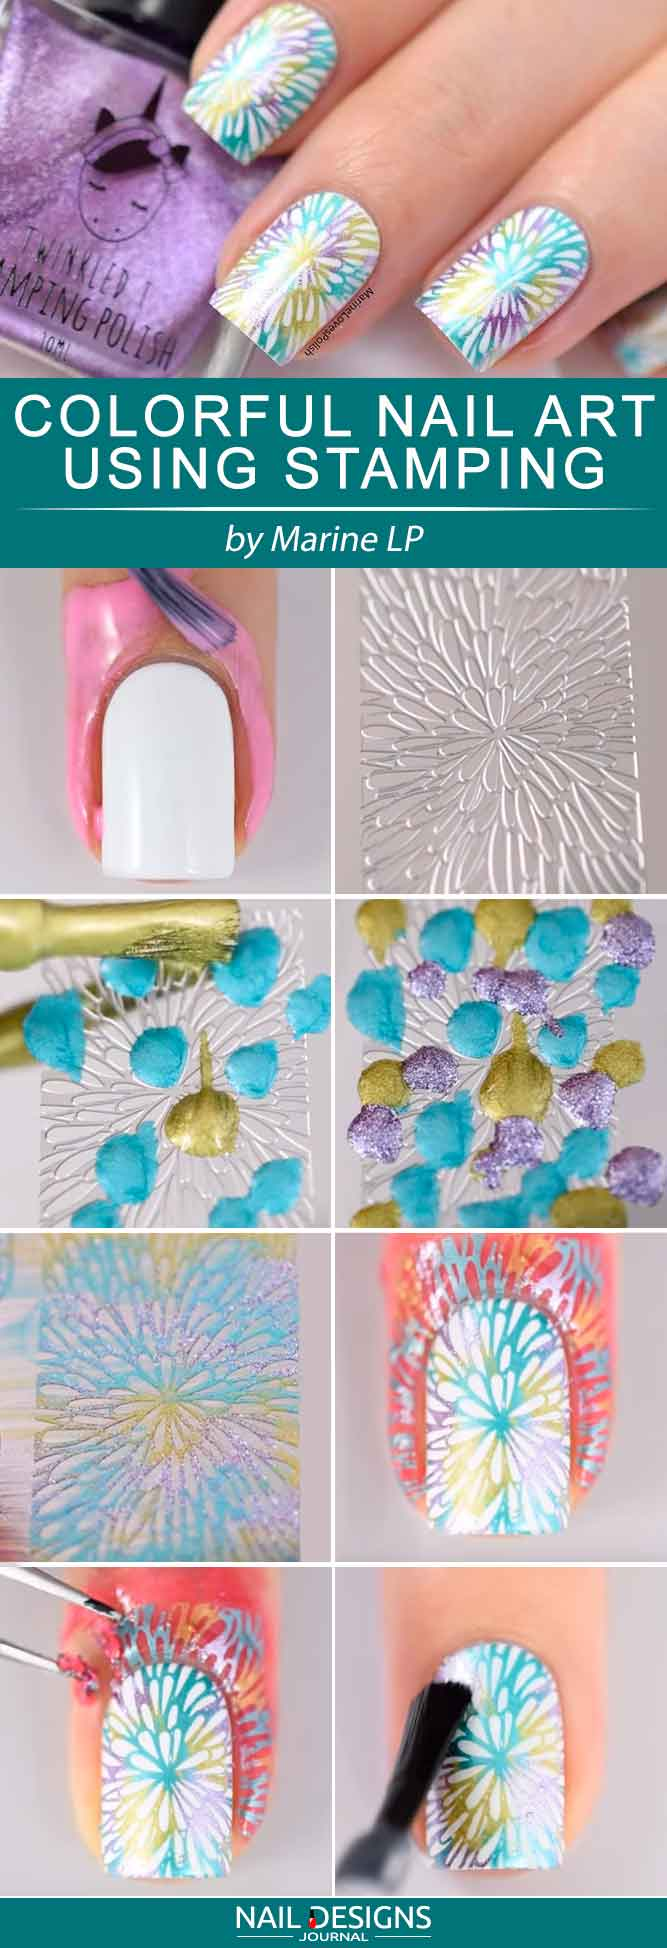 colorful-nails-with-stamping-art-